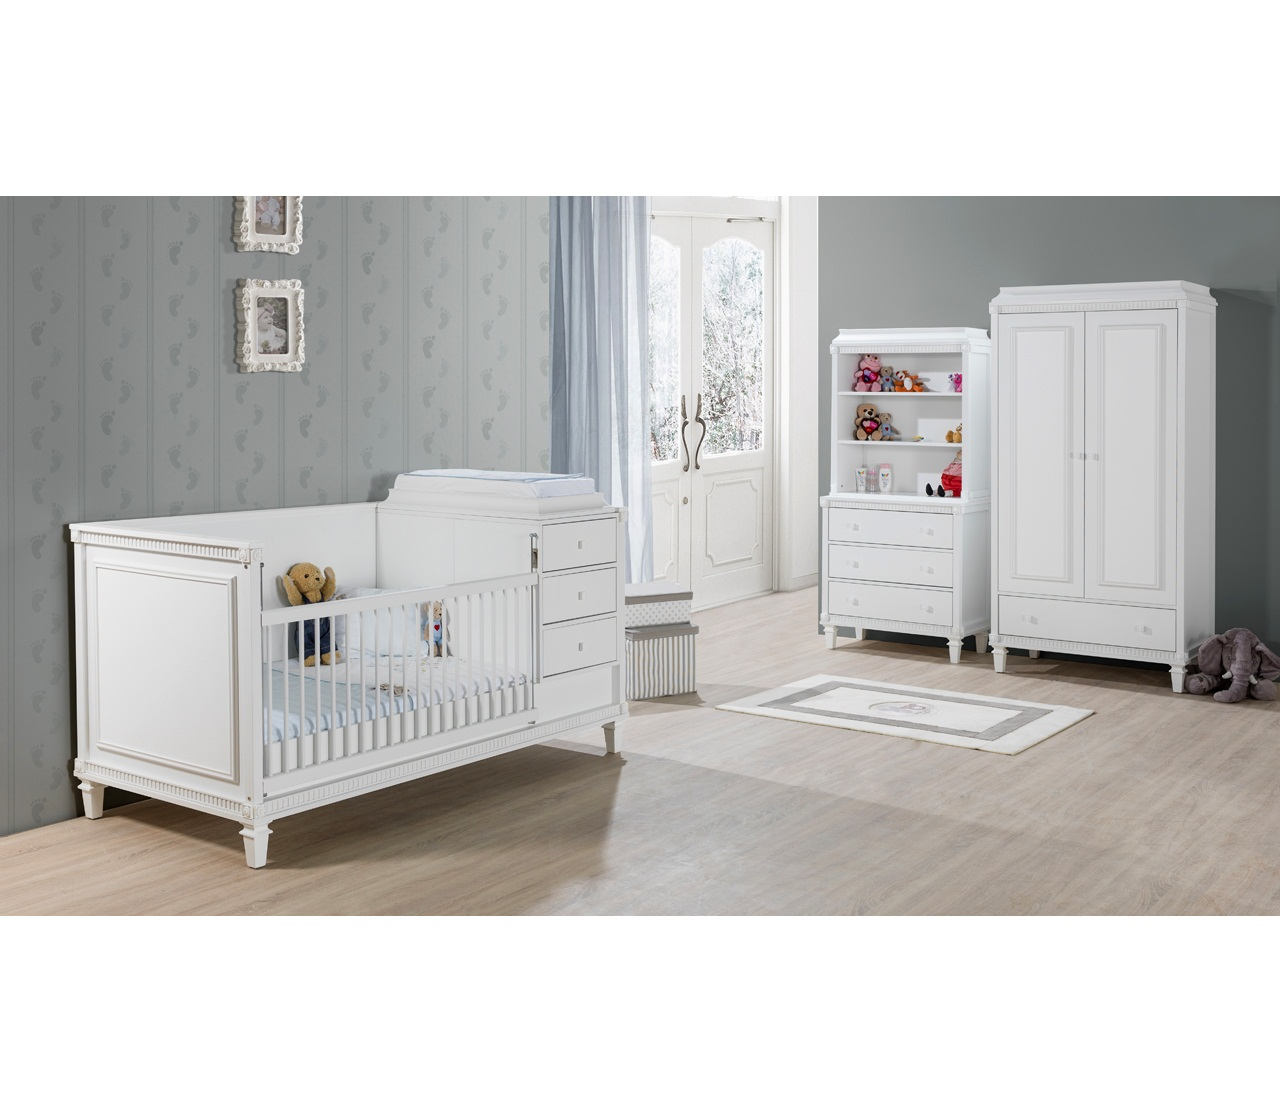 bett hazeran 90x200 cm landhausstil weiss kinderbett 78404. Black Bedroom Furniture Sets. Home Design Ideas